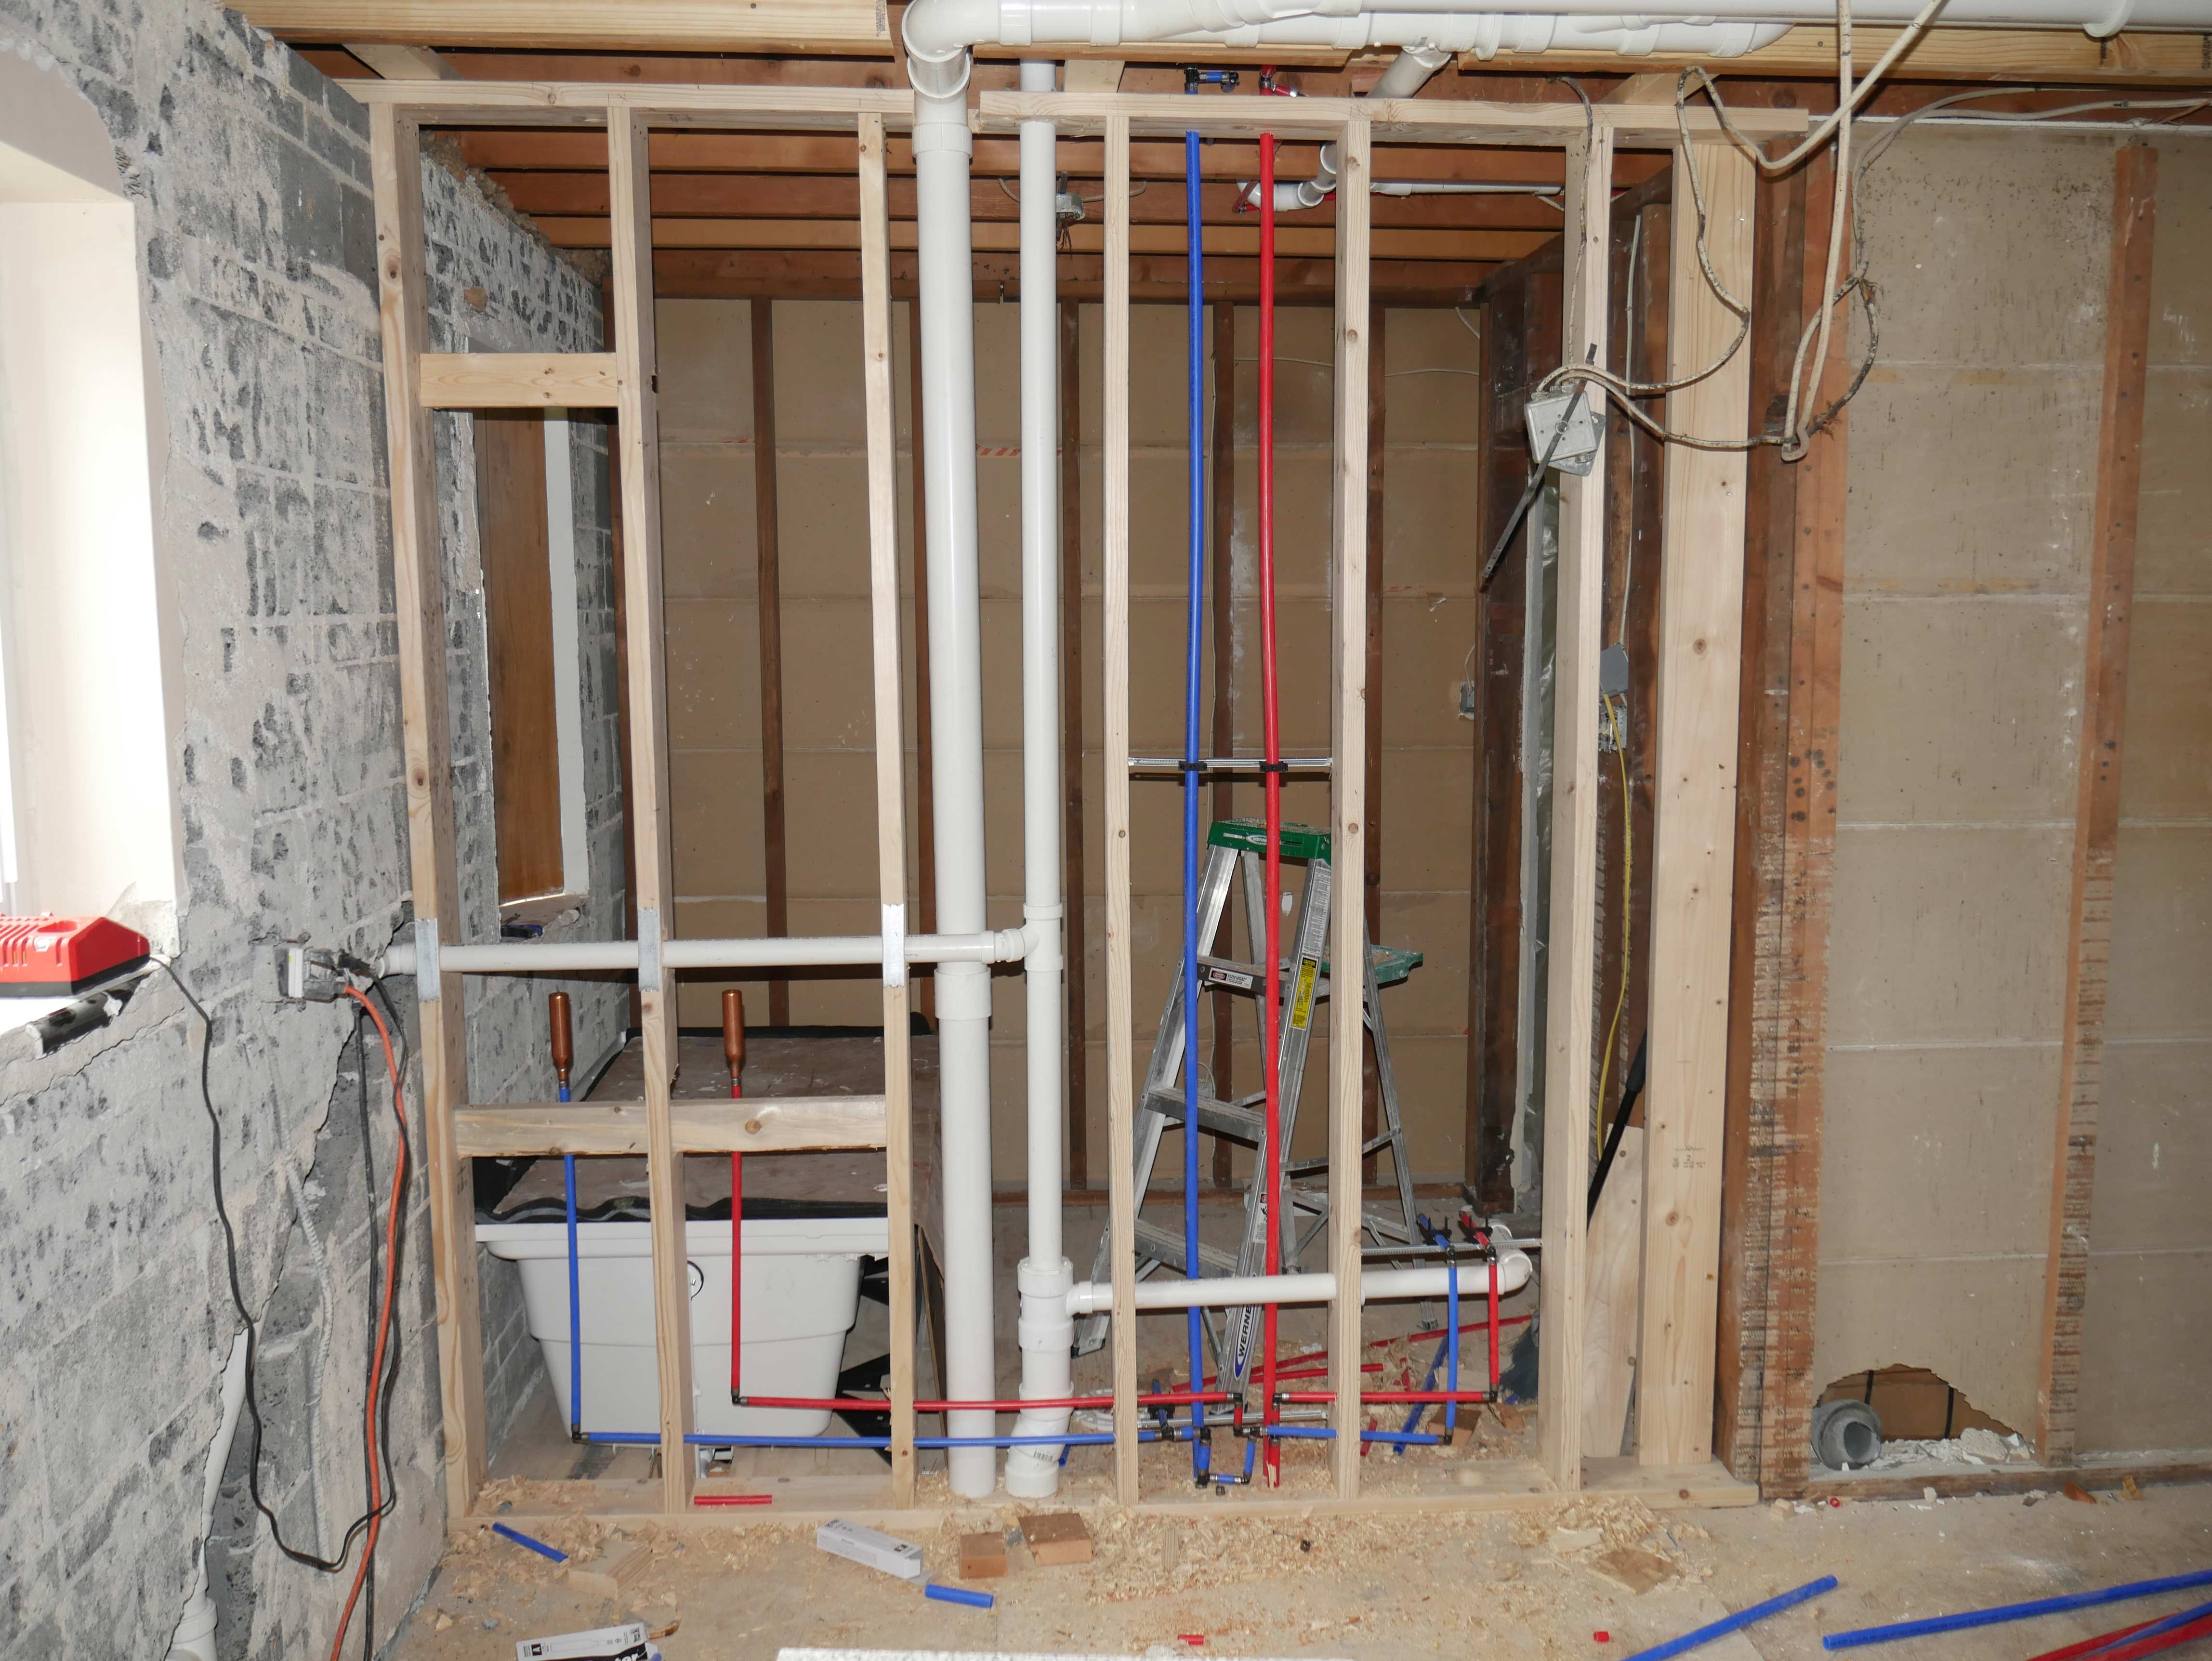 Ongoing plumbing project